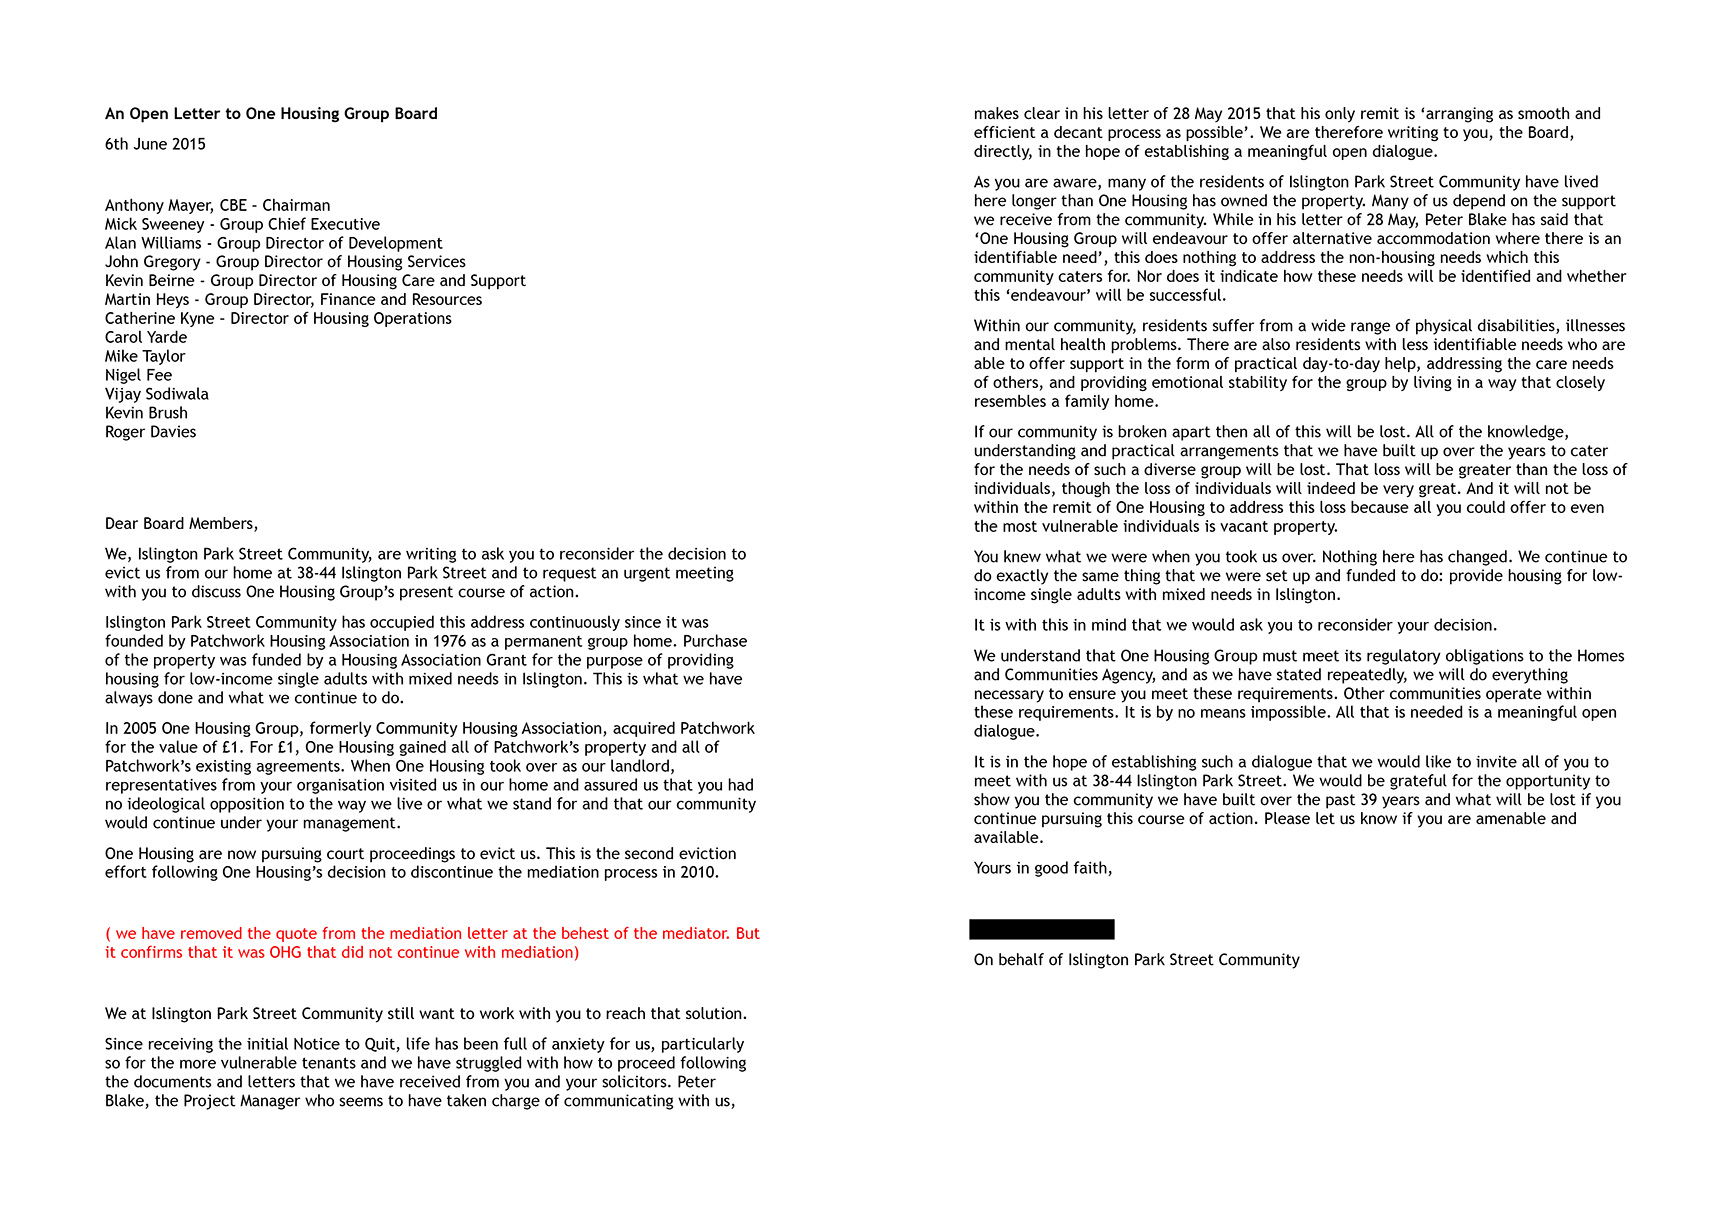 Open Letter To One Housing Group Board 1 Islington Park Street